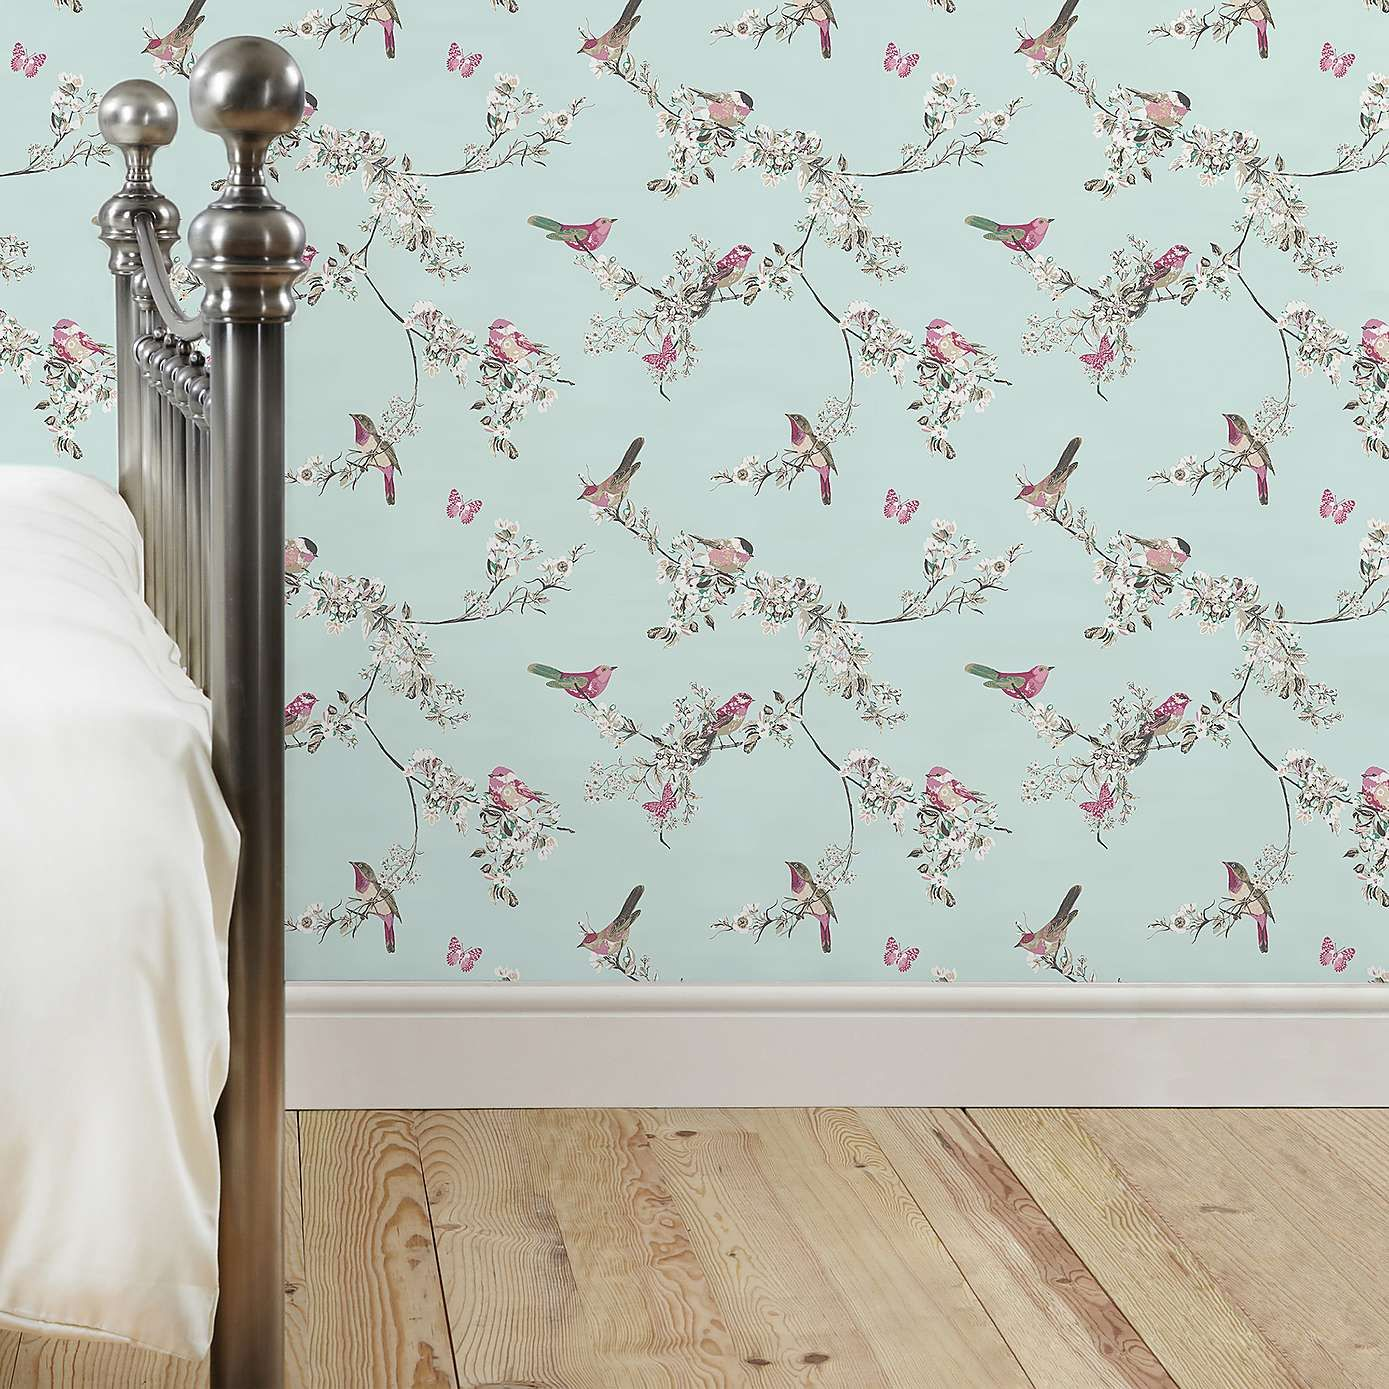 Duck Egg Wallpaper Bedroom Ideas Beautiful Birds Duck Egg Wallpaper | Dunelm | Flower